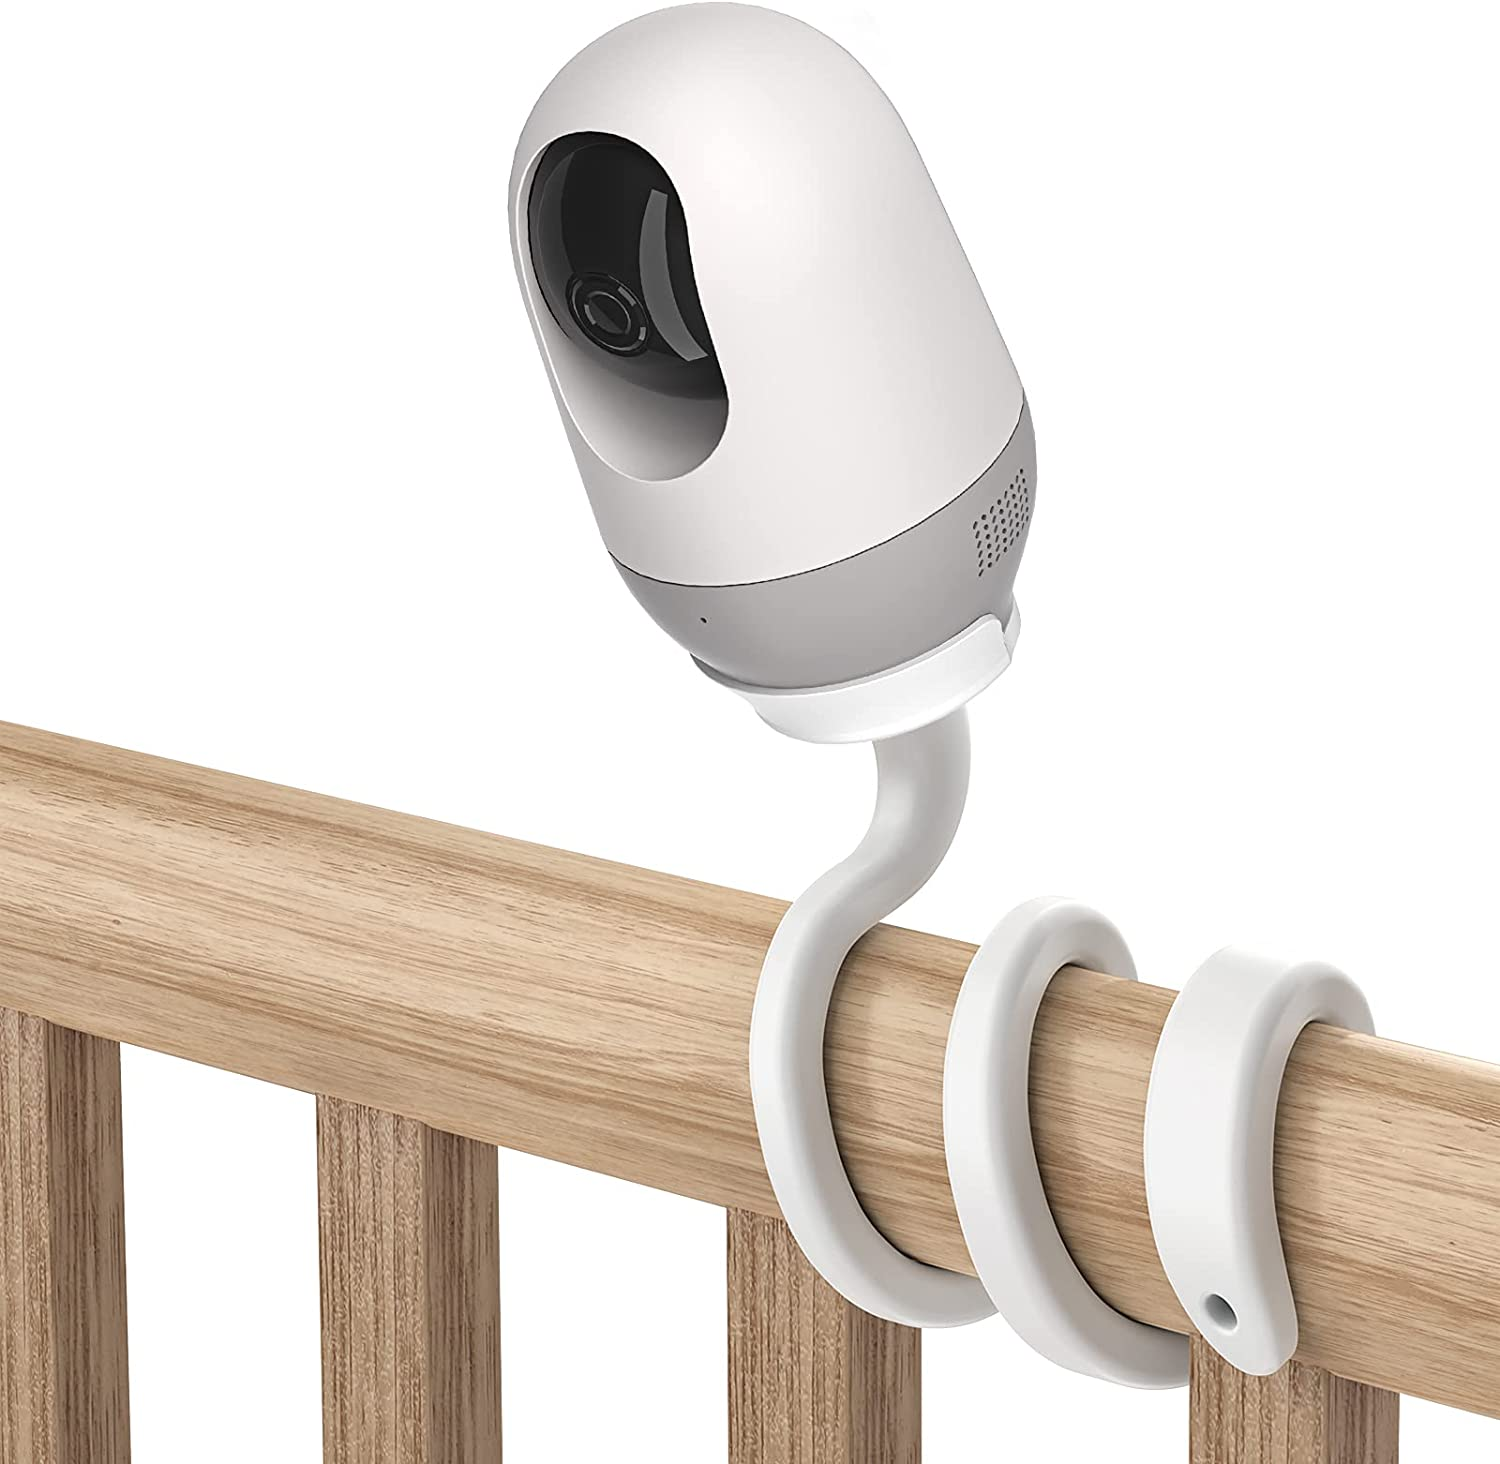 Koroao Baby Monitor Mount for Nooie Baby Monitor Flexible Twist Mount Bracket Without Tools or Wall Damage